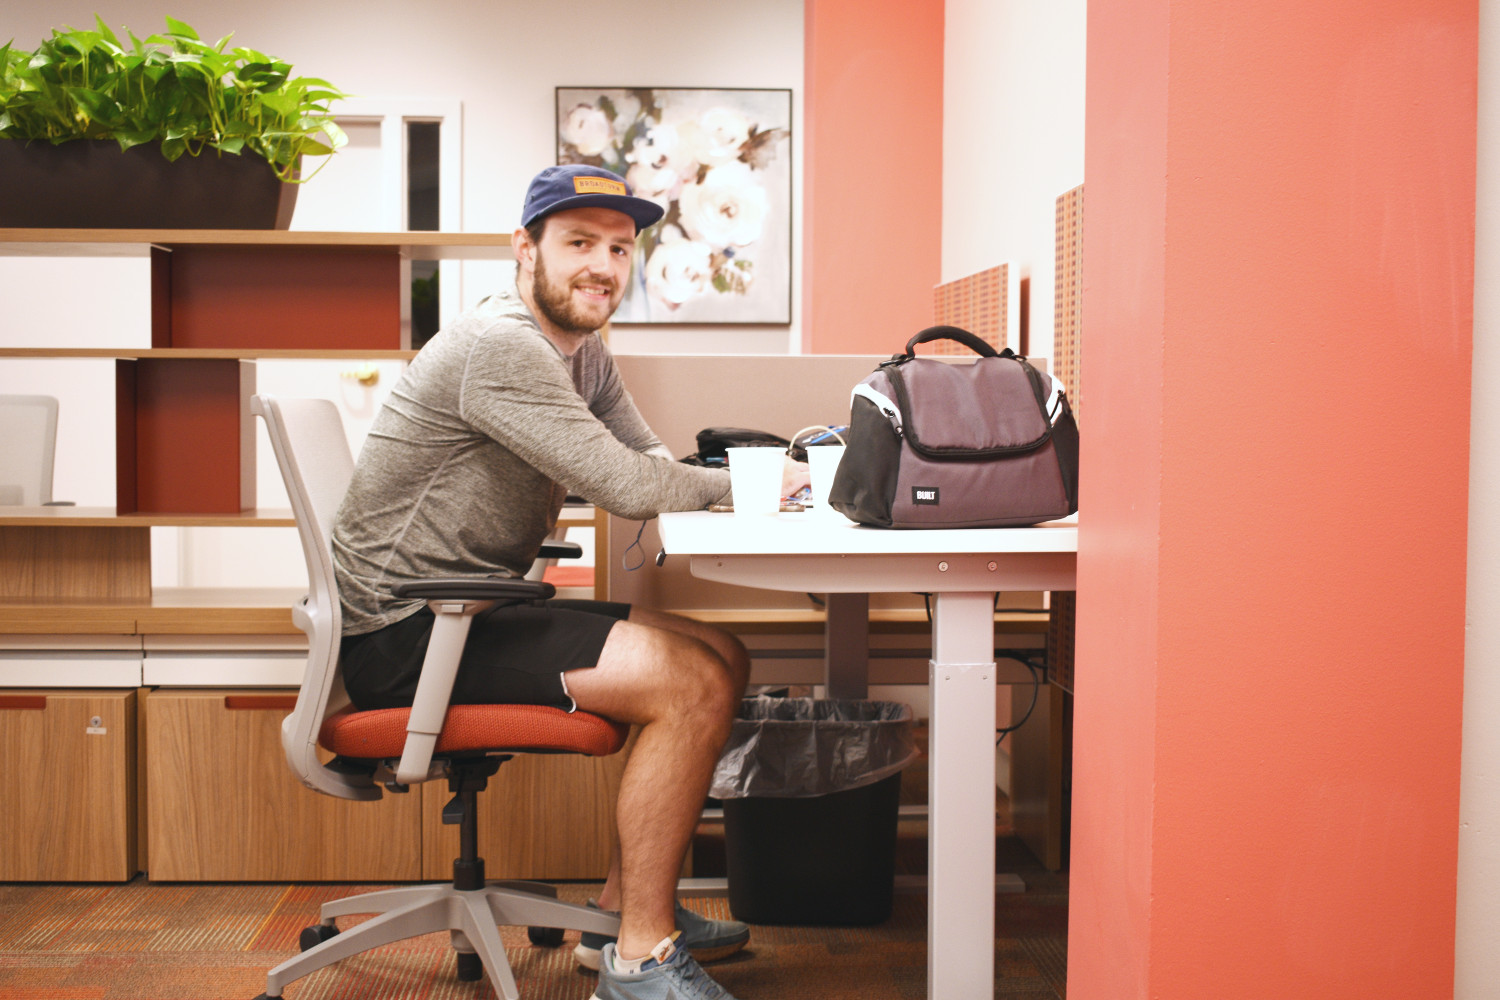 Phil Cutler works at Red Oak Coworking space